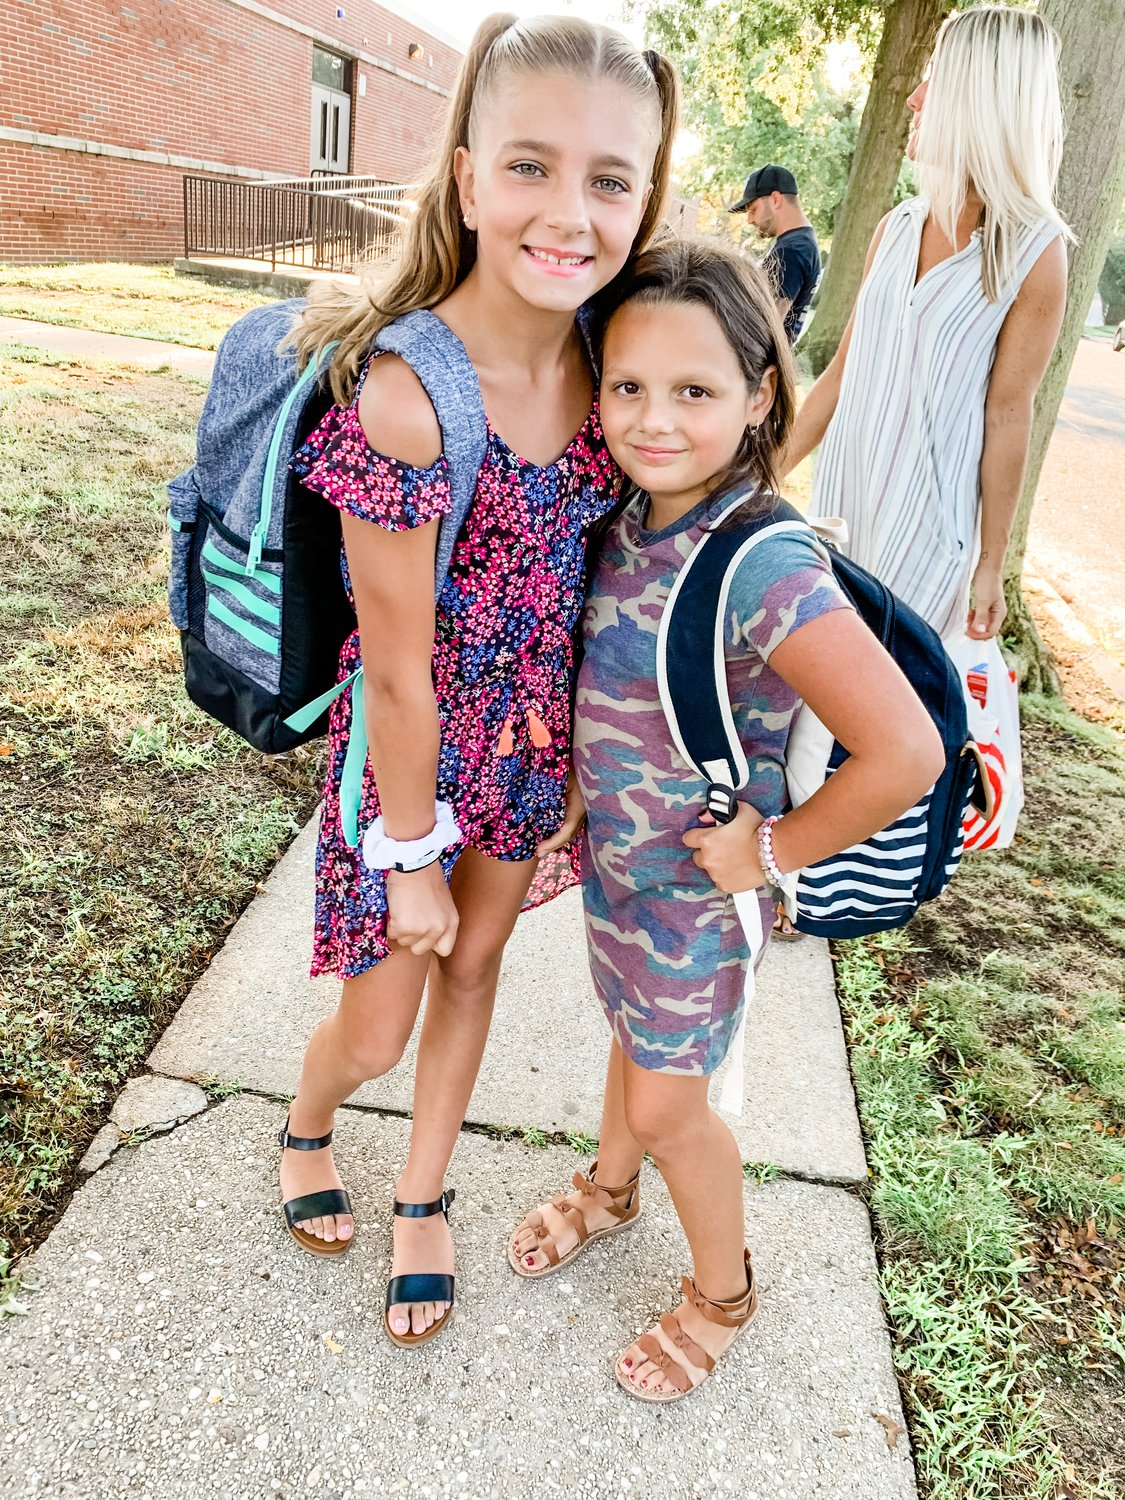 Isabella Marsicano, left, and Ava Tullo enjoyed the beautiful sunshine before their first day at School No. 8.